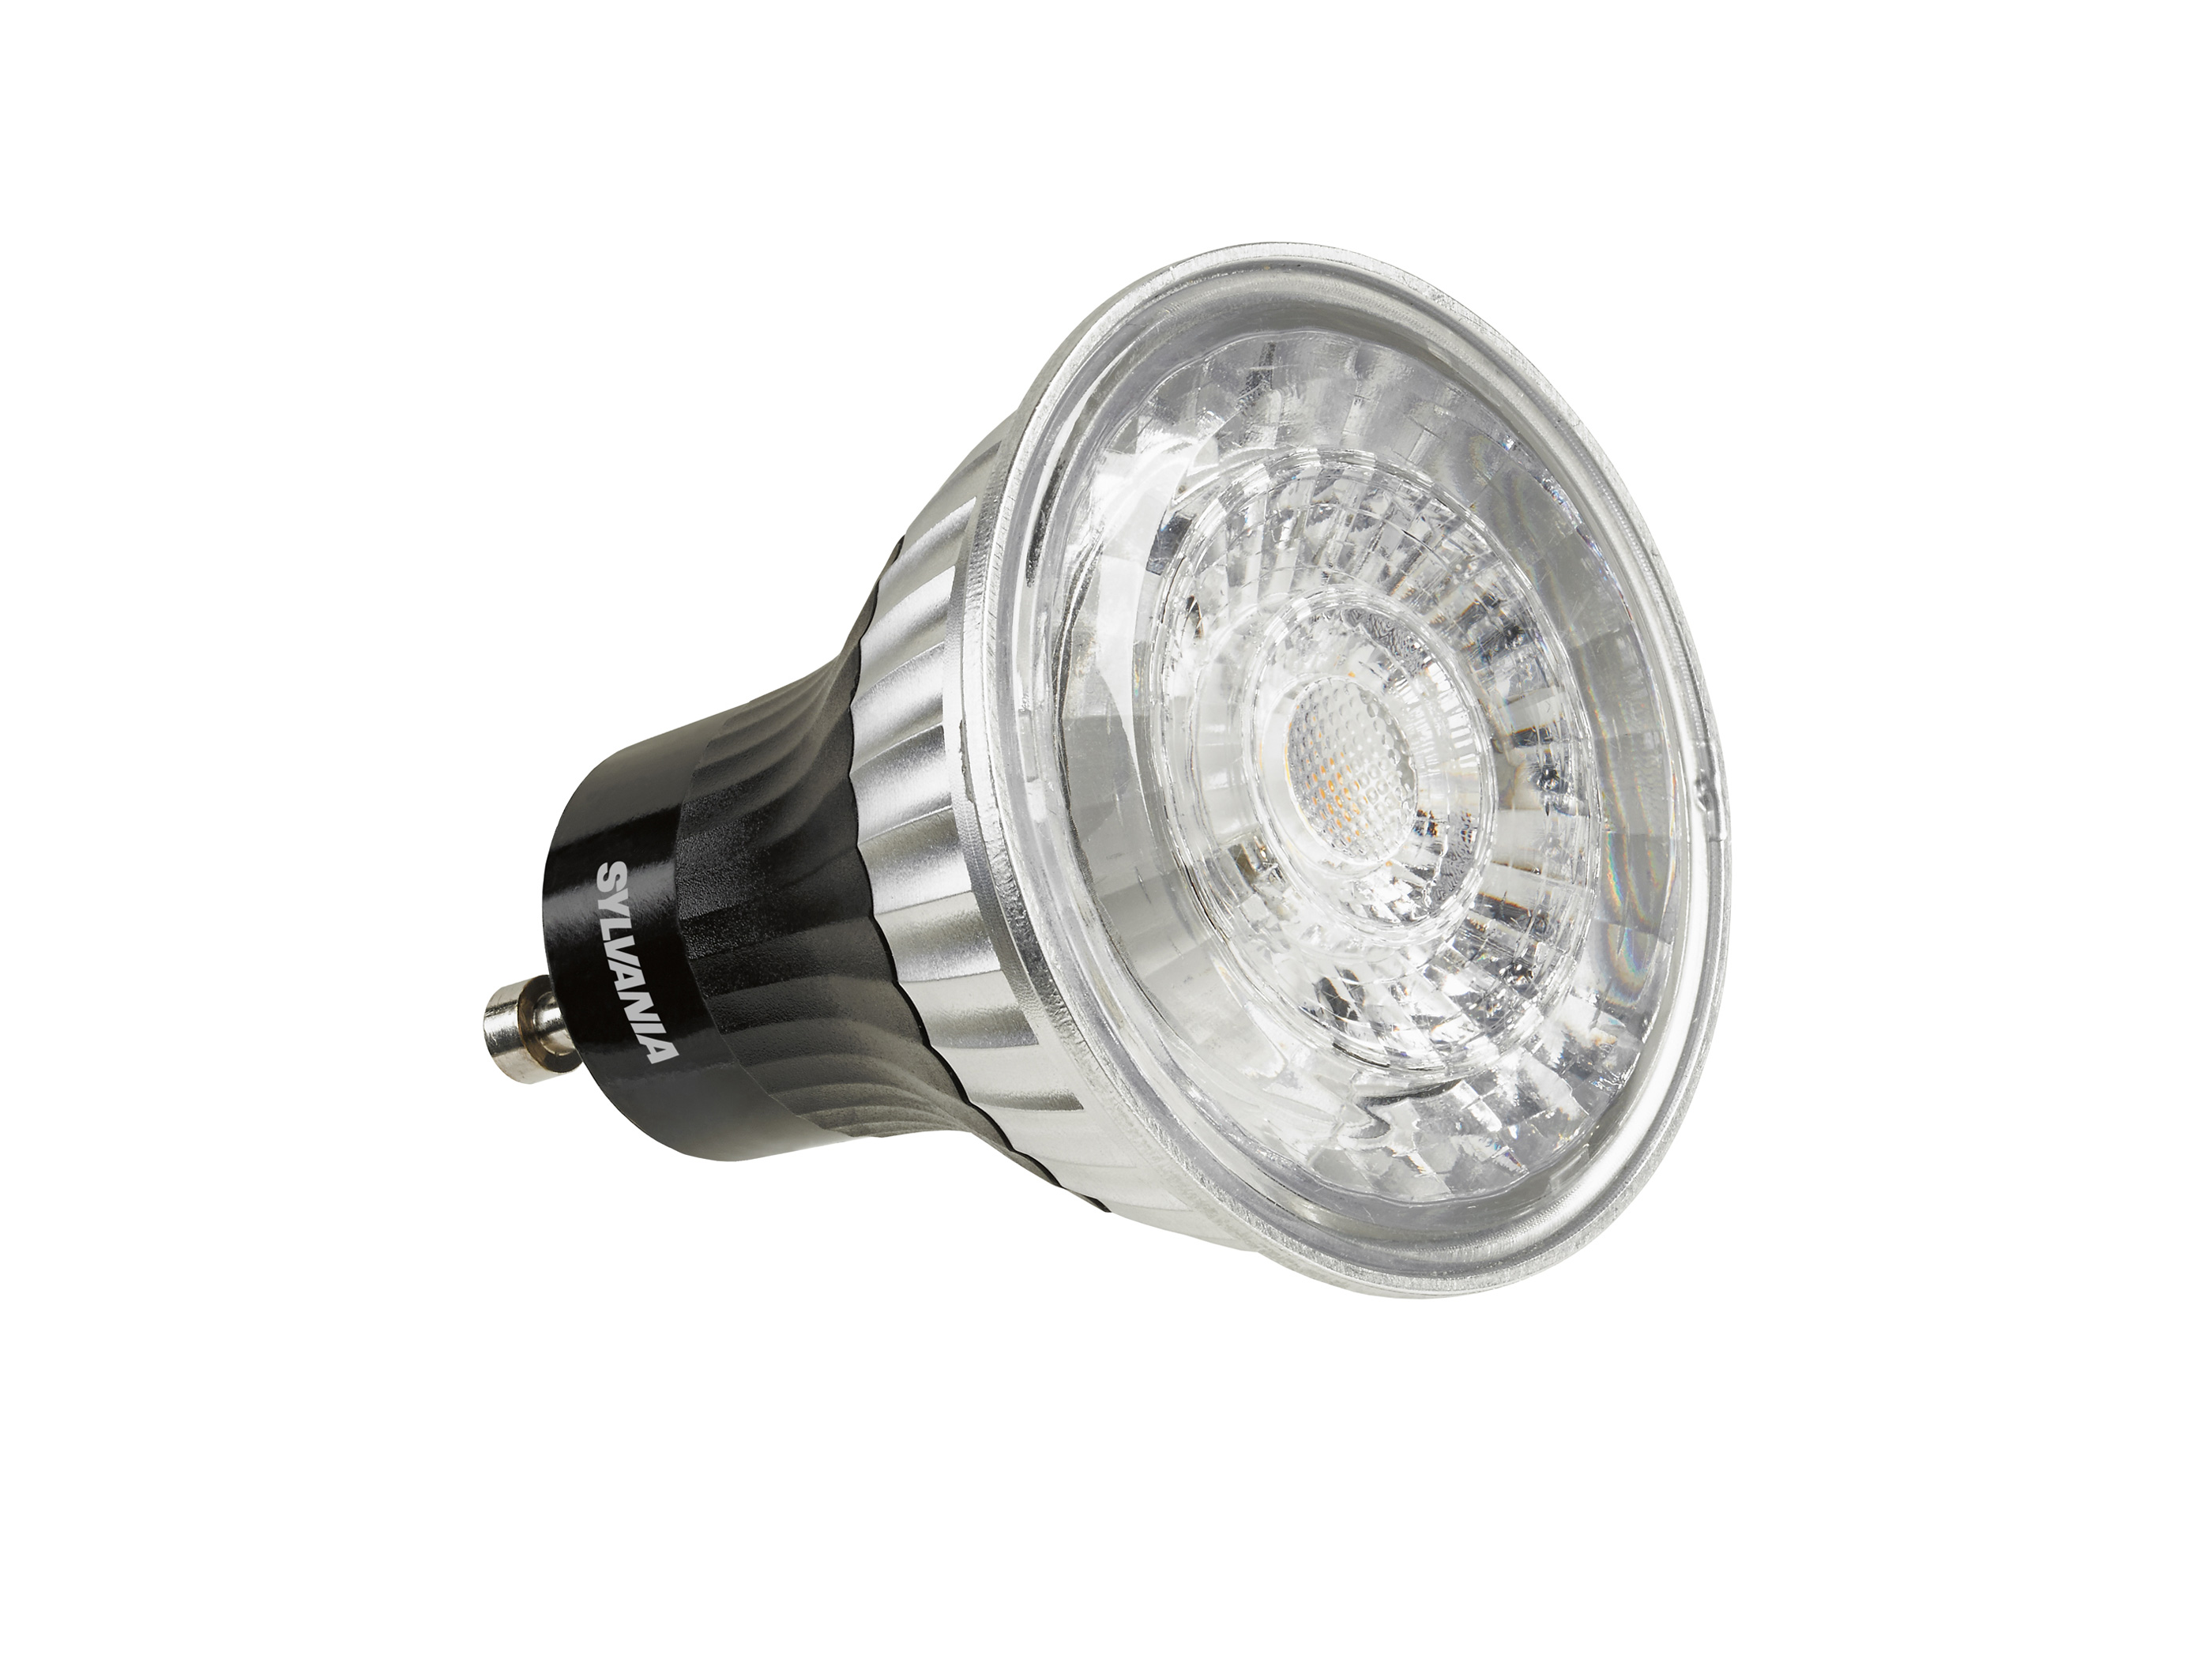 Led Gu10 Dimbaar Warm Wit Osram Led Gu10 Gu10 5 Watt Lamp Osram Led Star Warm White Osram